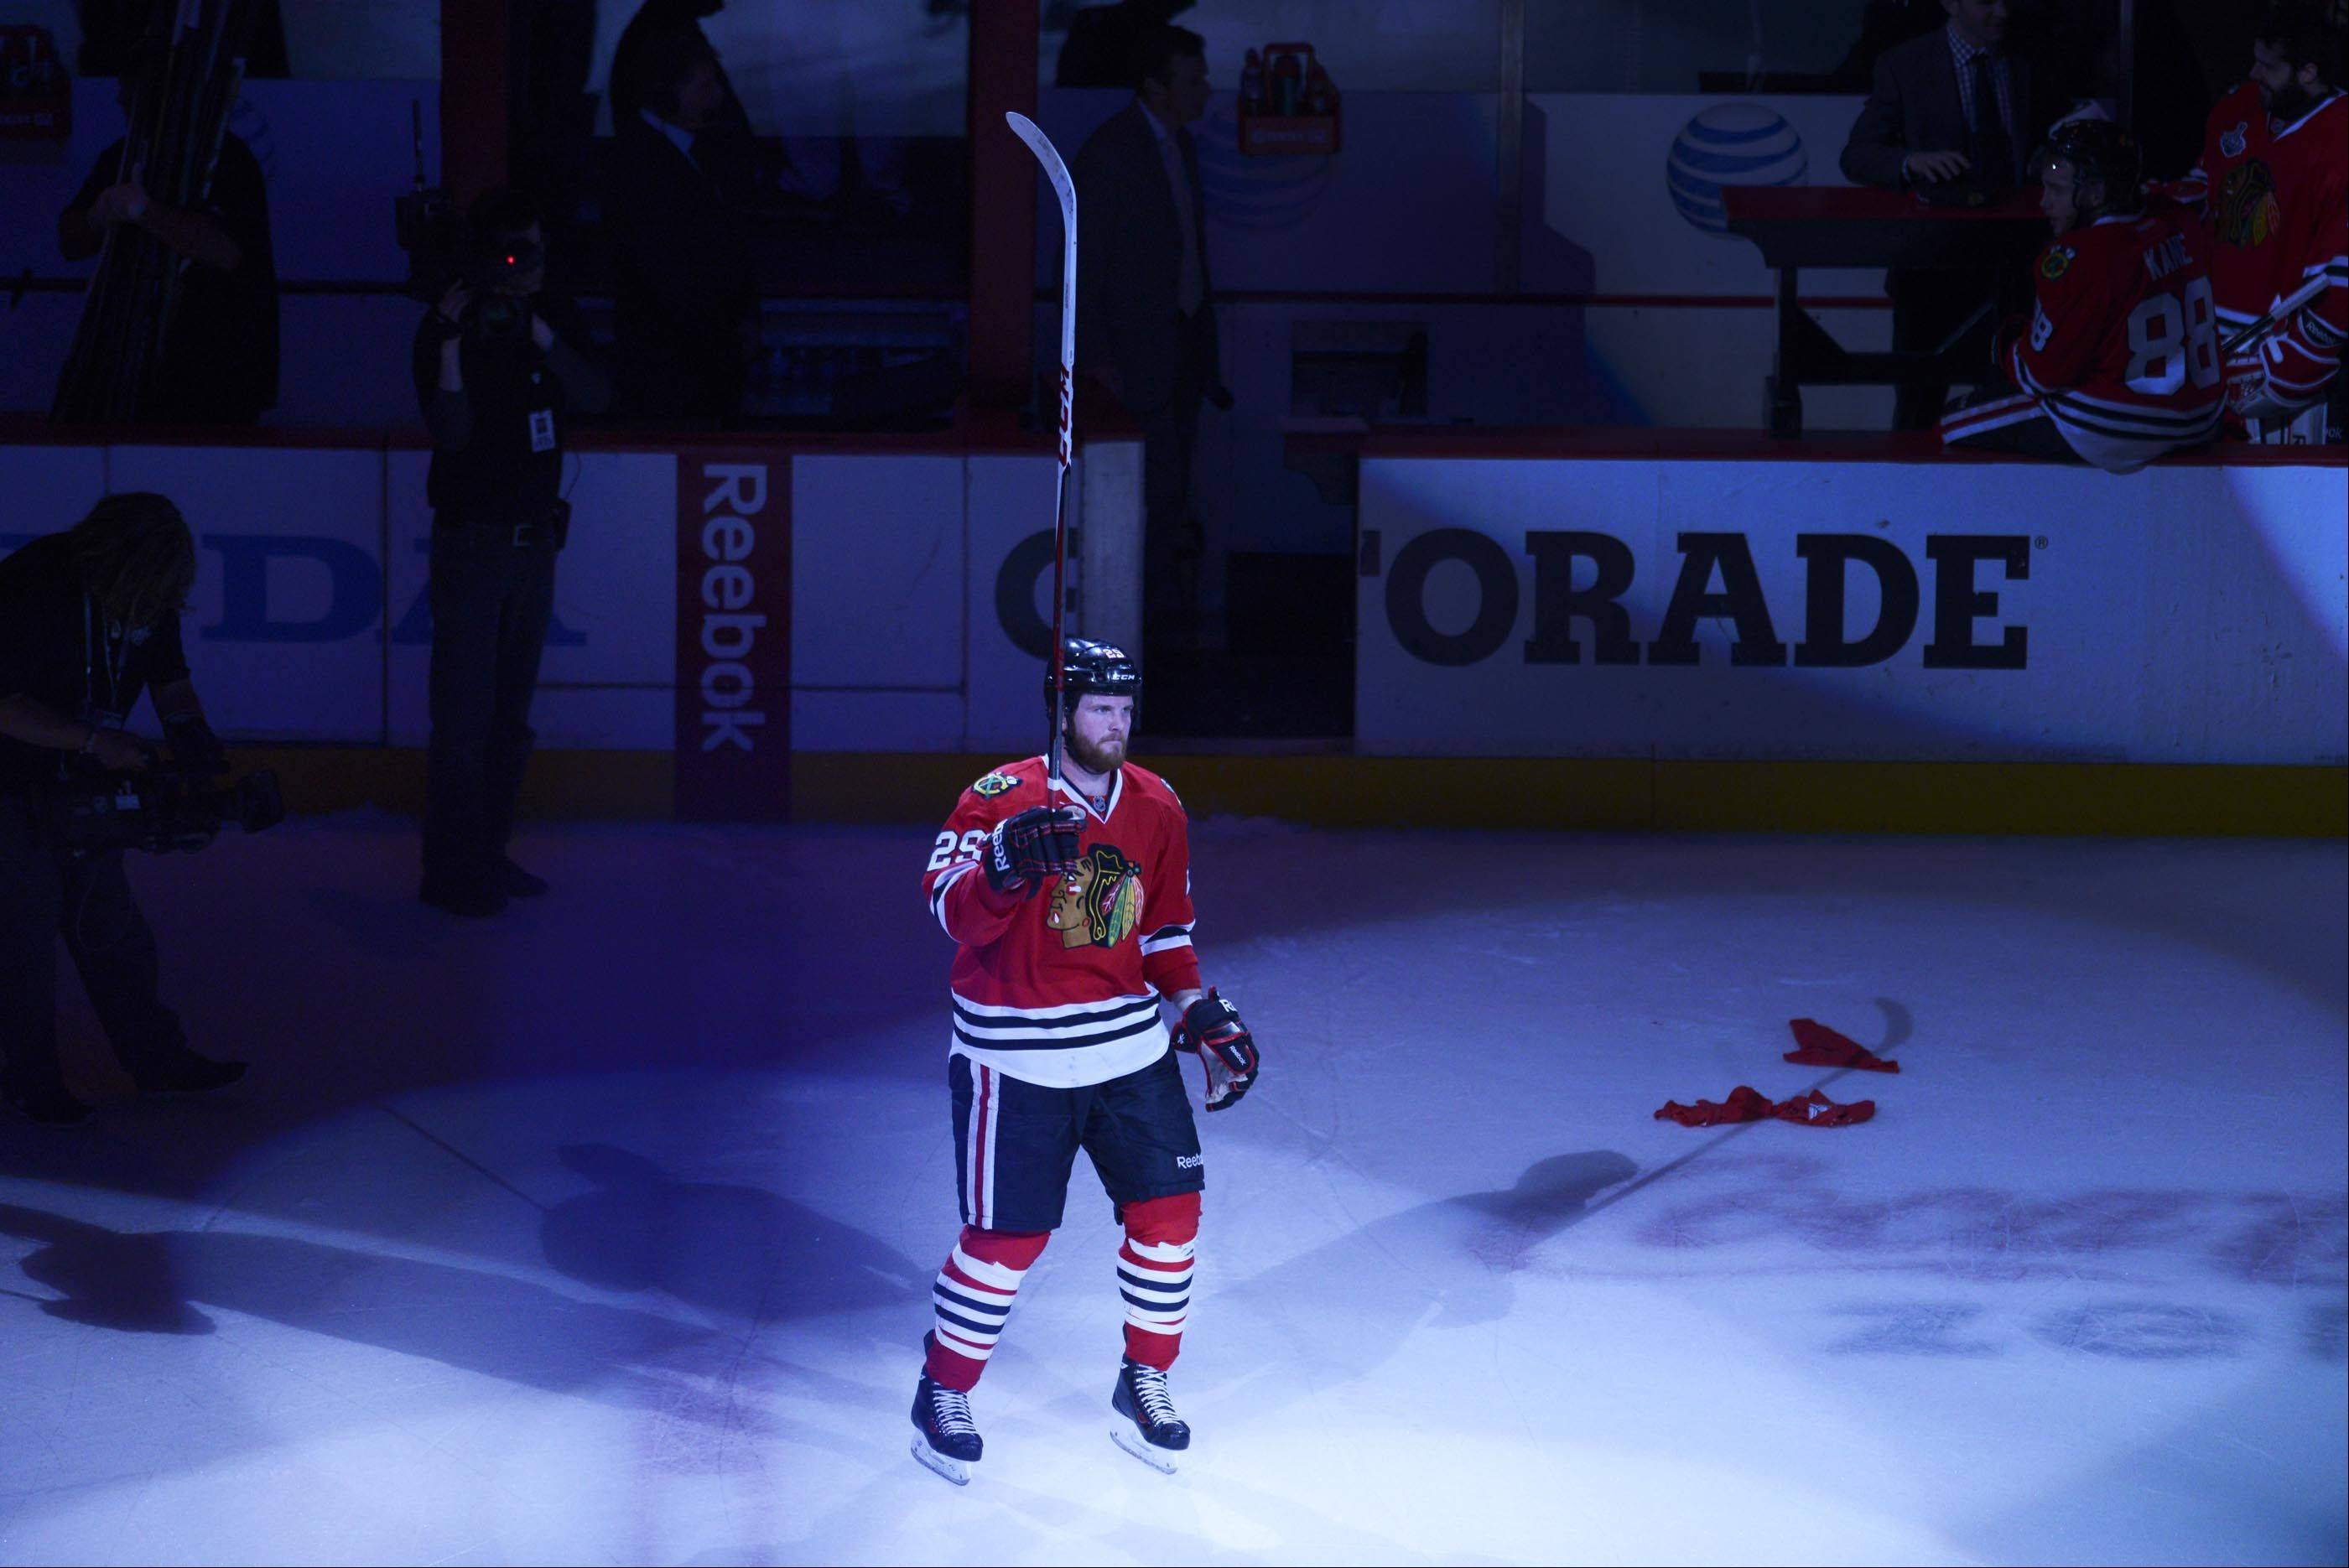 Chicago Blackhawks left wing Bryan Bickell was one of the stars of the game Saturday in Game 5 of the Stanley Cup Finals at the United Center in Chicago.